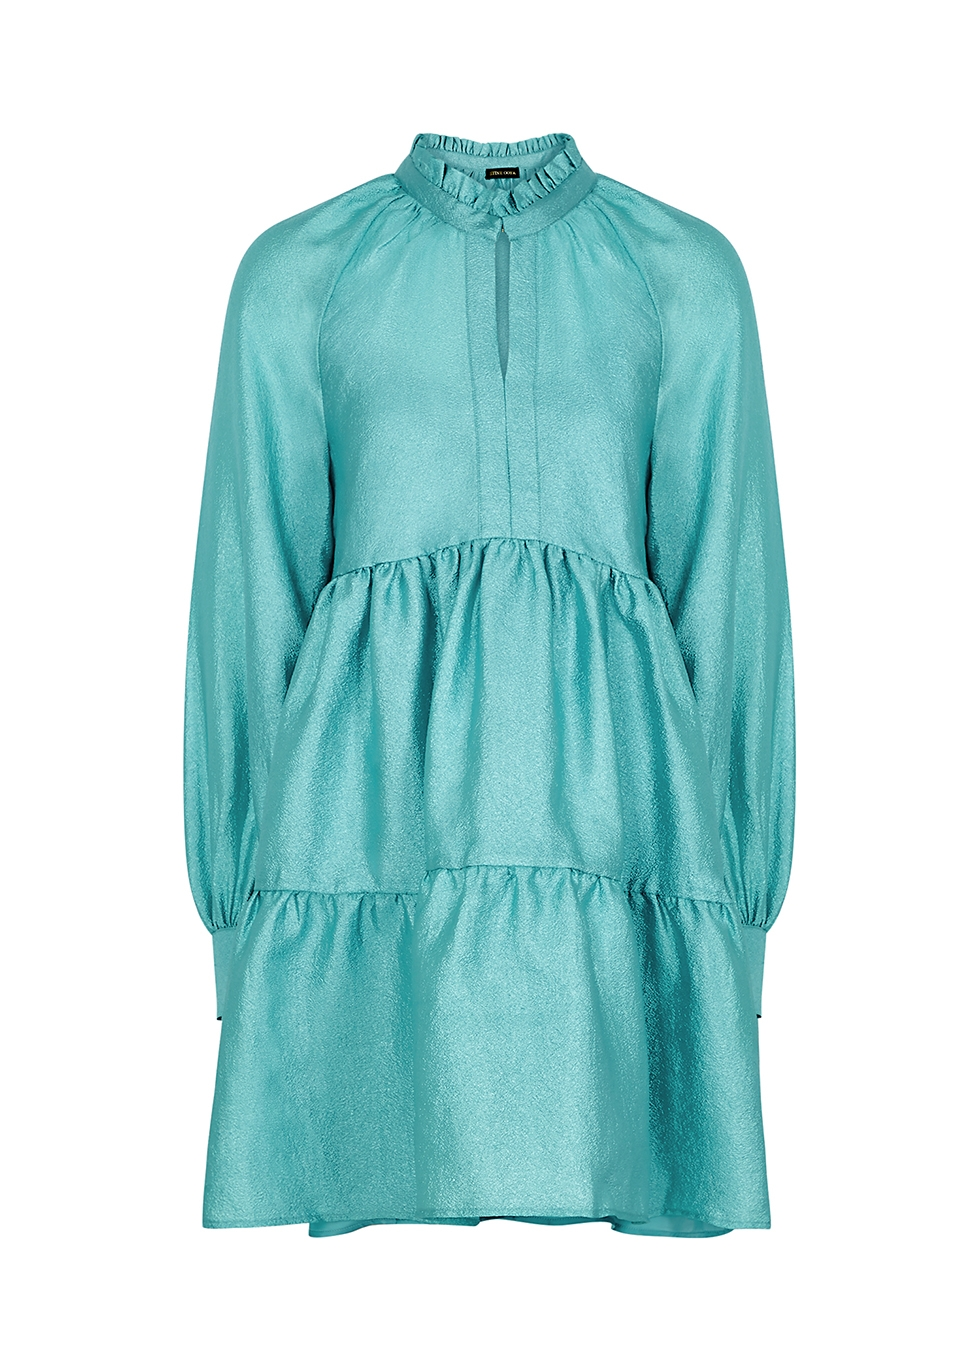 Jasmine metallic aqua mini dress